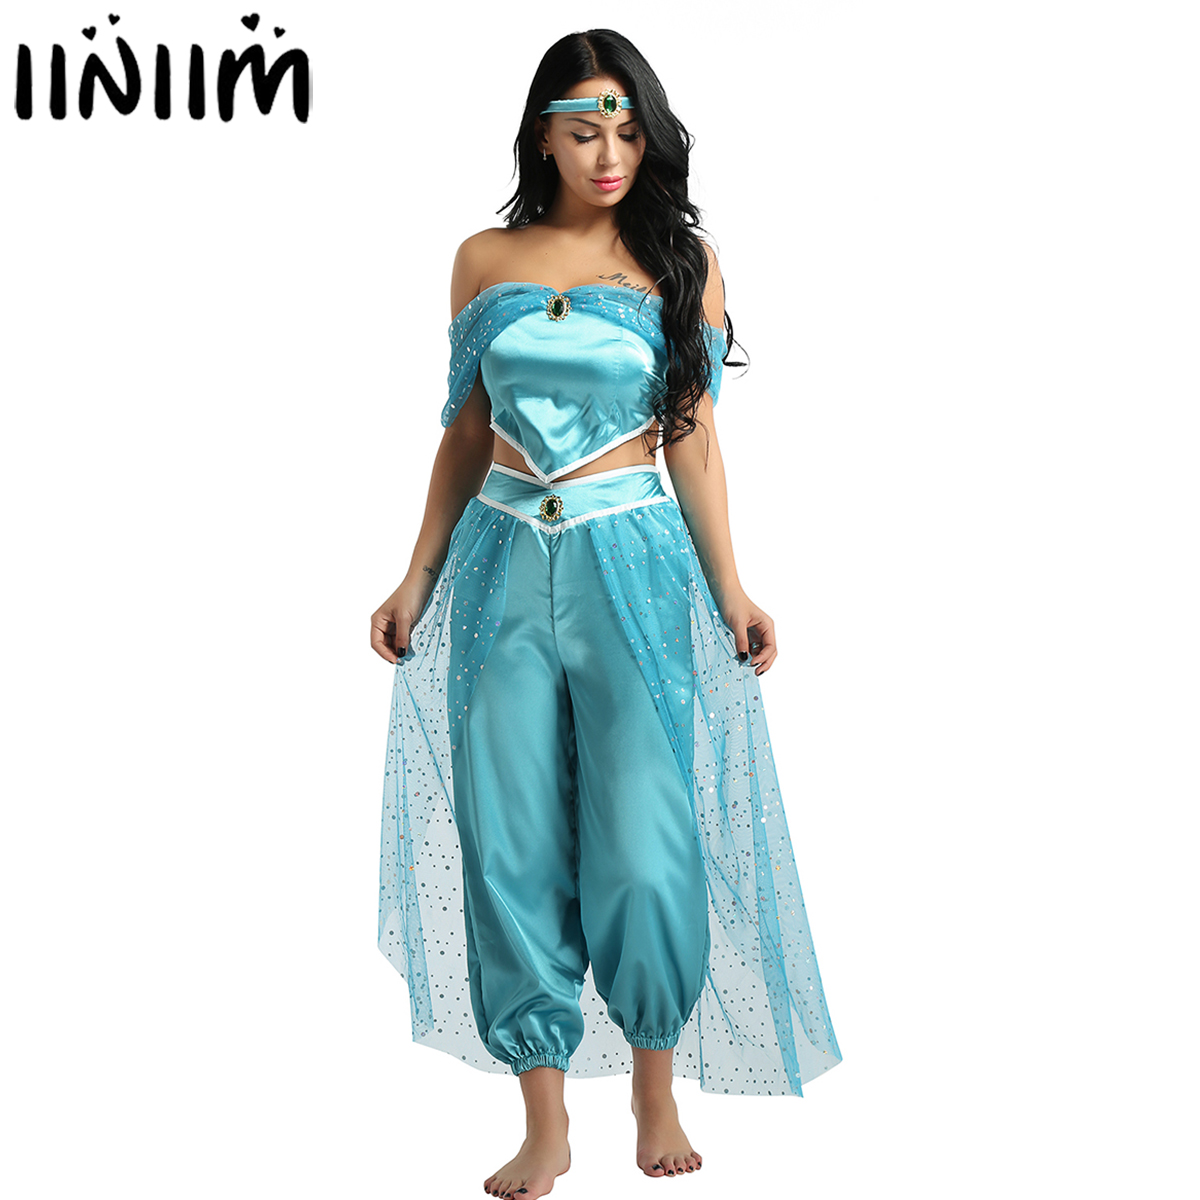 Womens Adult Jasmine Princess Glittery Reflective Costume Off Shoulder Crop Top with Pants Set Halloween Cosplay Party Dress Up